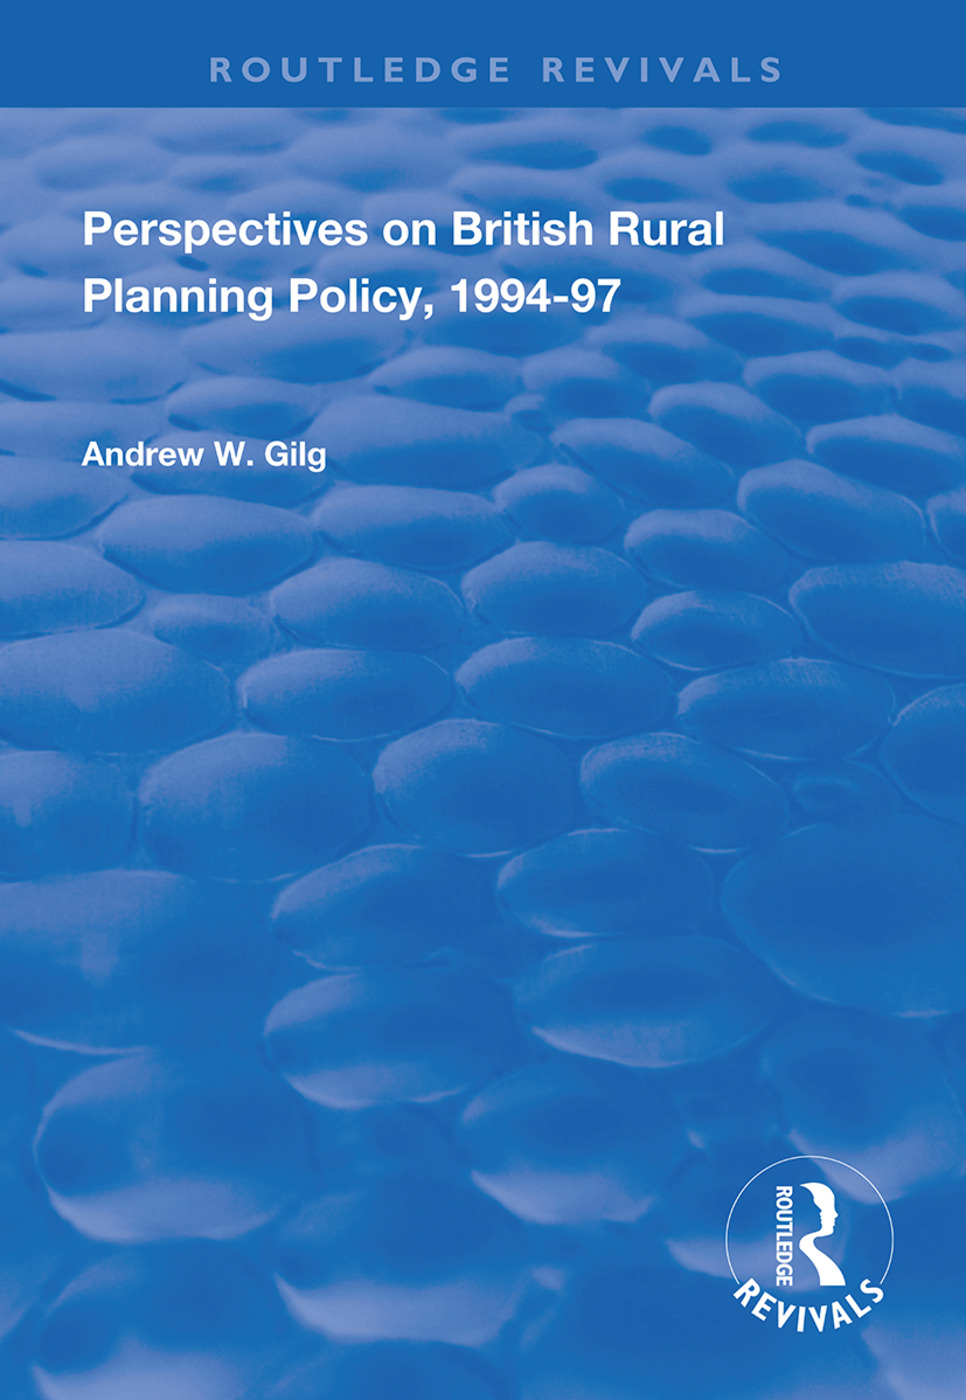 Perspectives on British Rural Planning Policy, 1994-97